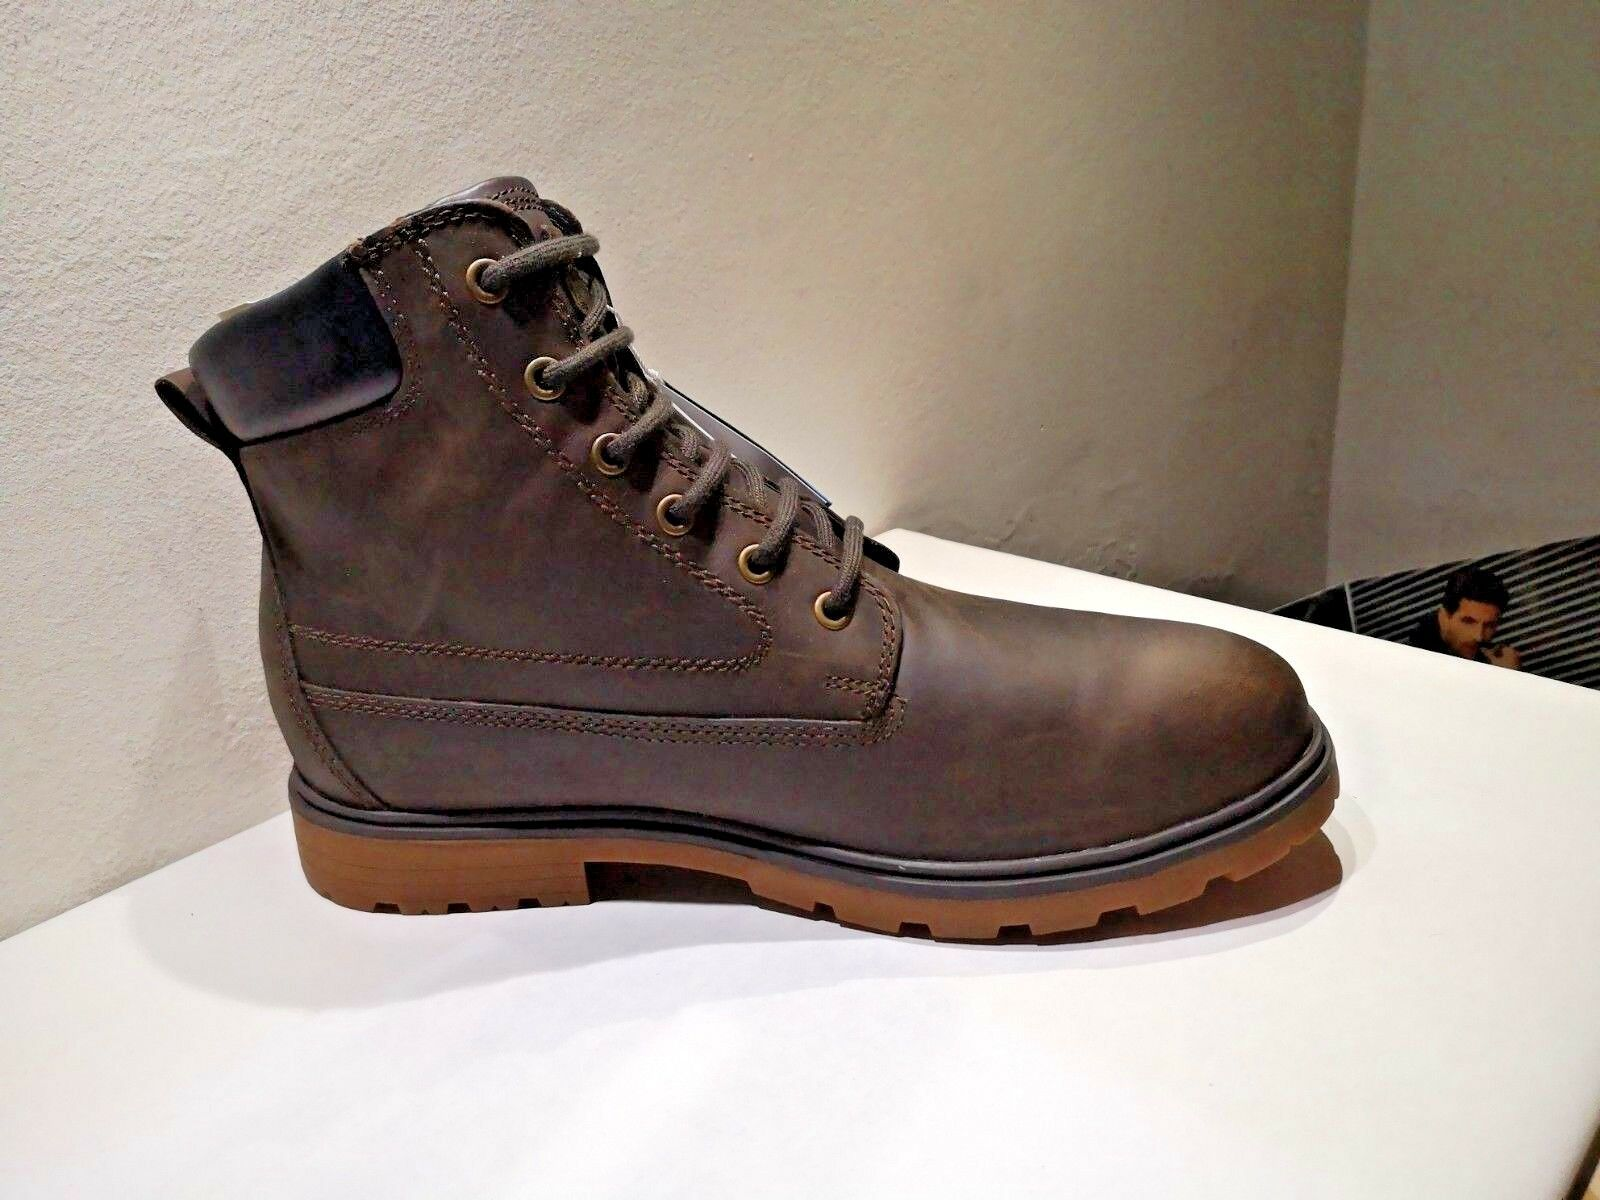 GEOX boots amphibiox leather brown NEW Value 169E Sizes ,41,43,44,45